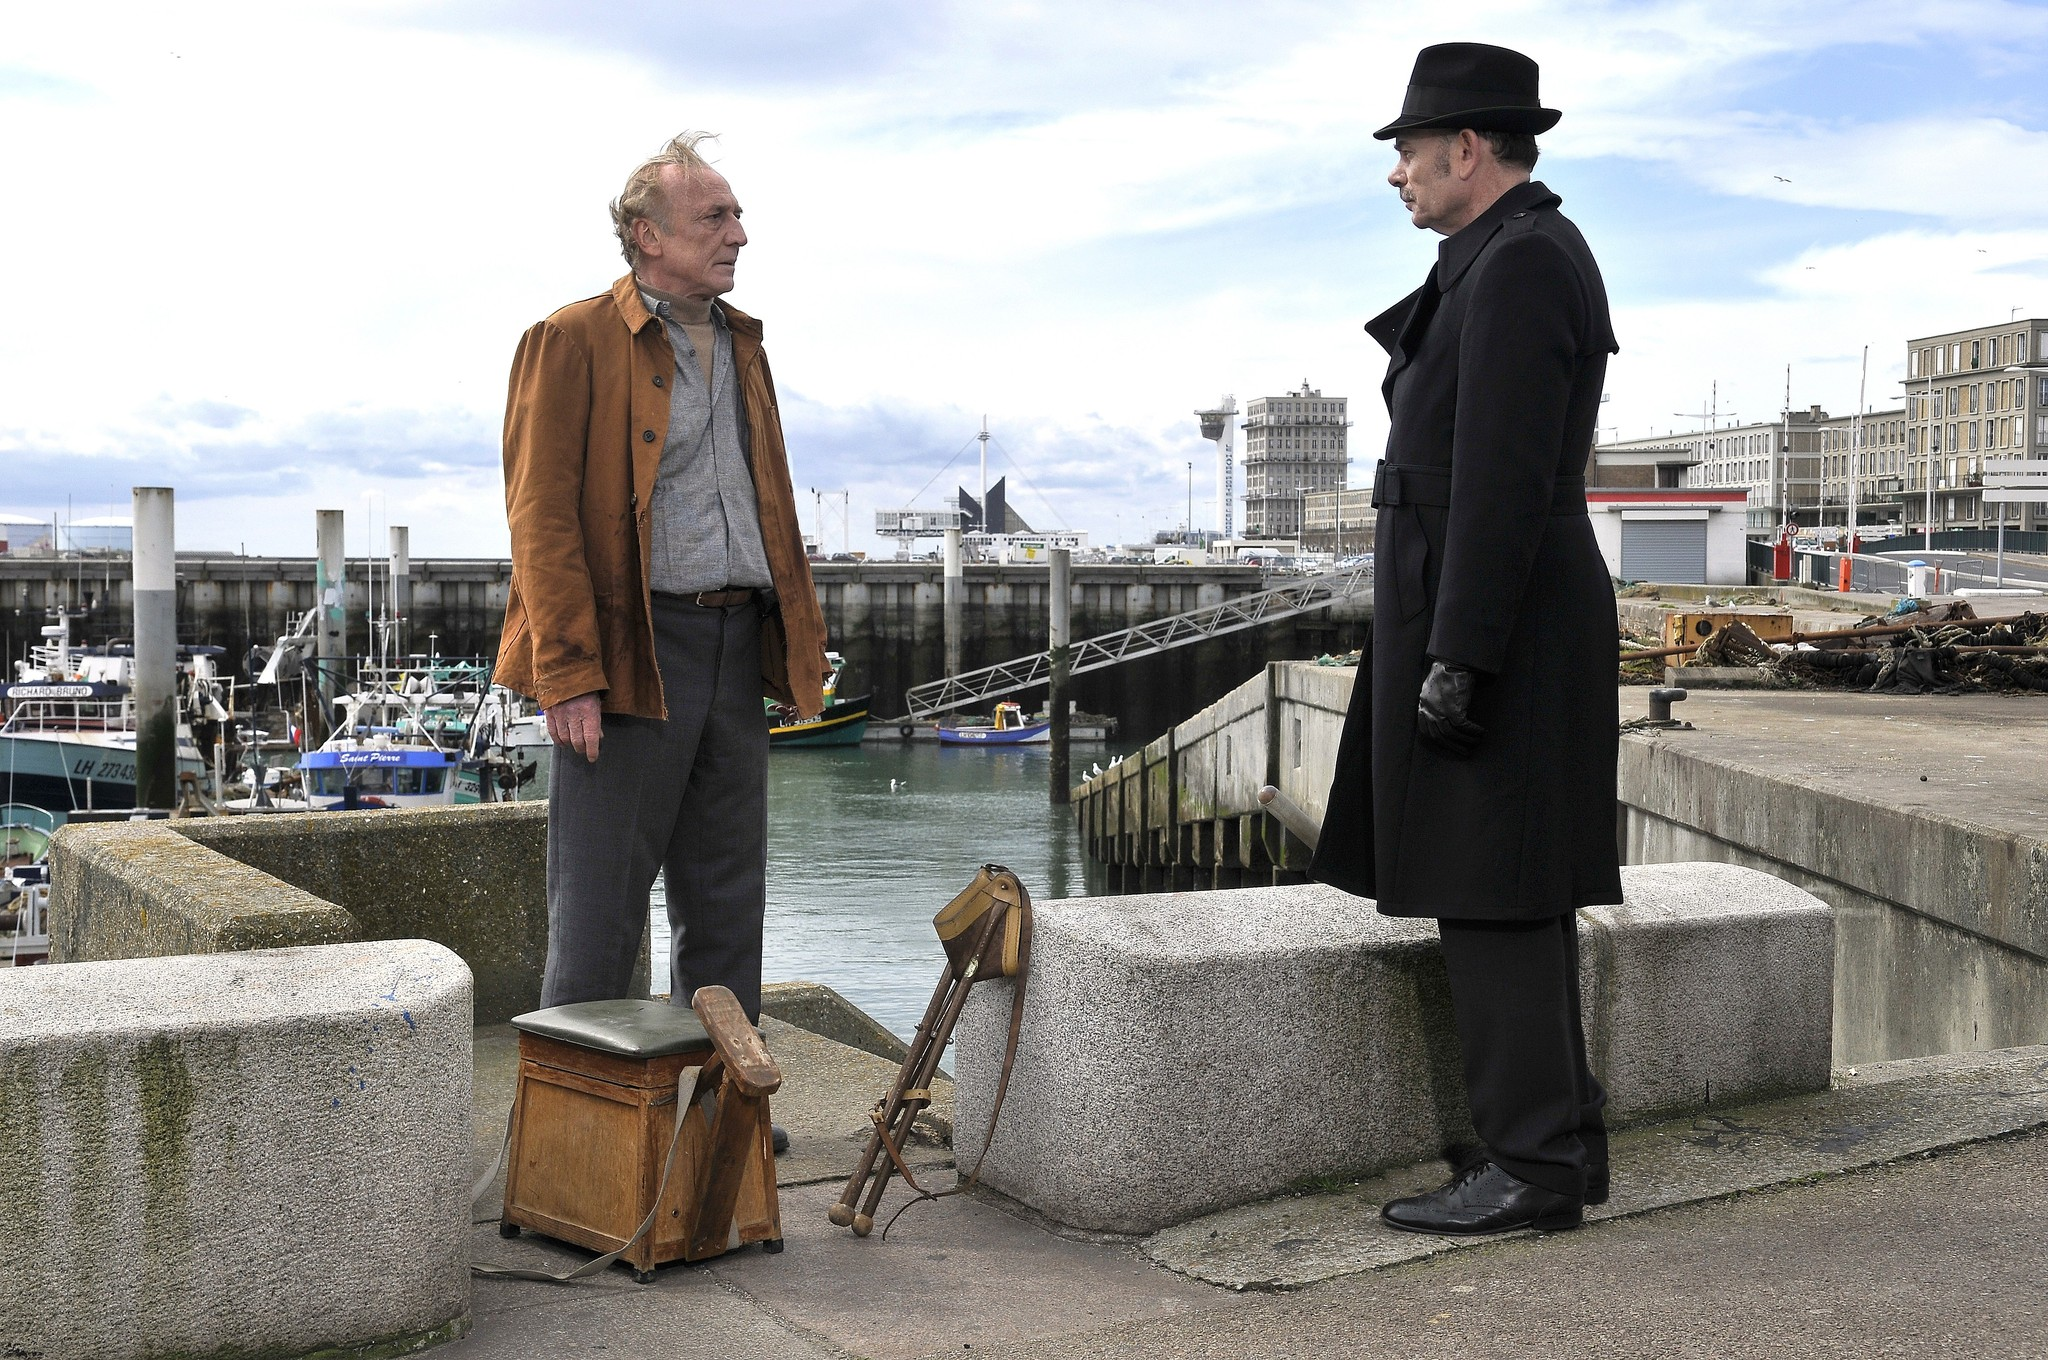 Jean-Pierre Darroussin and André Wilms in Le Havre (2011)